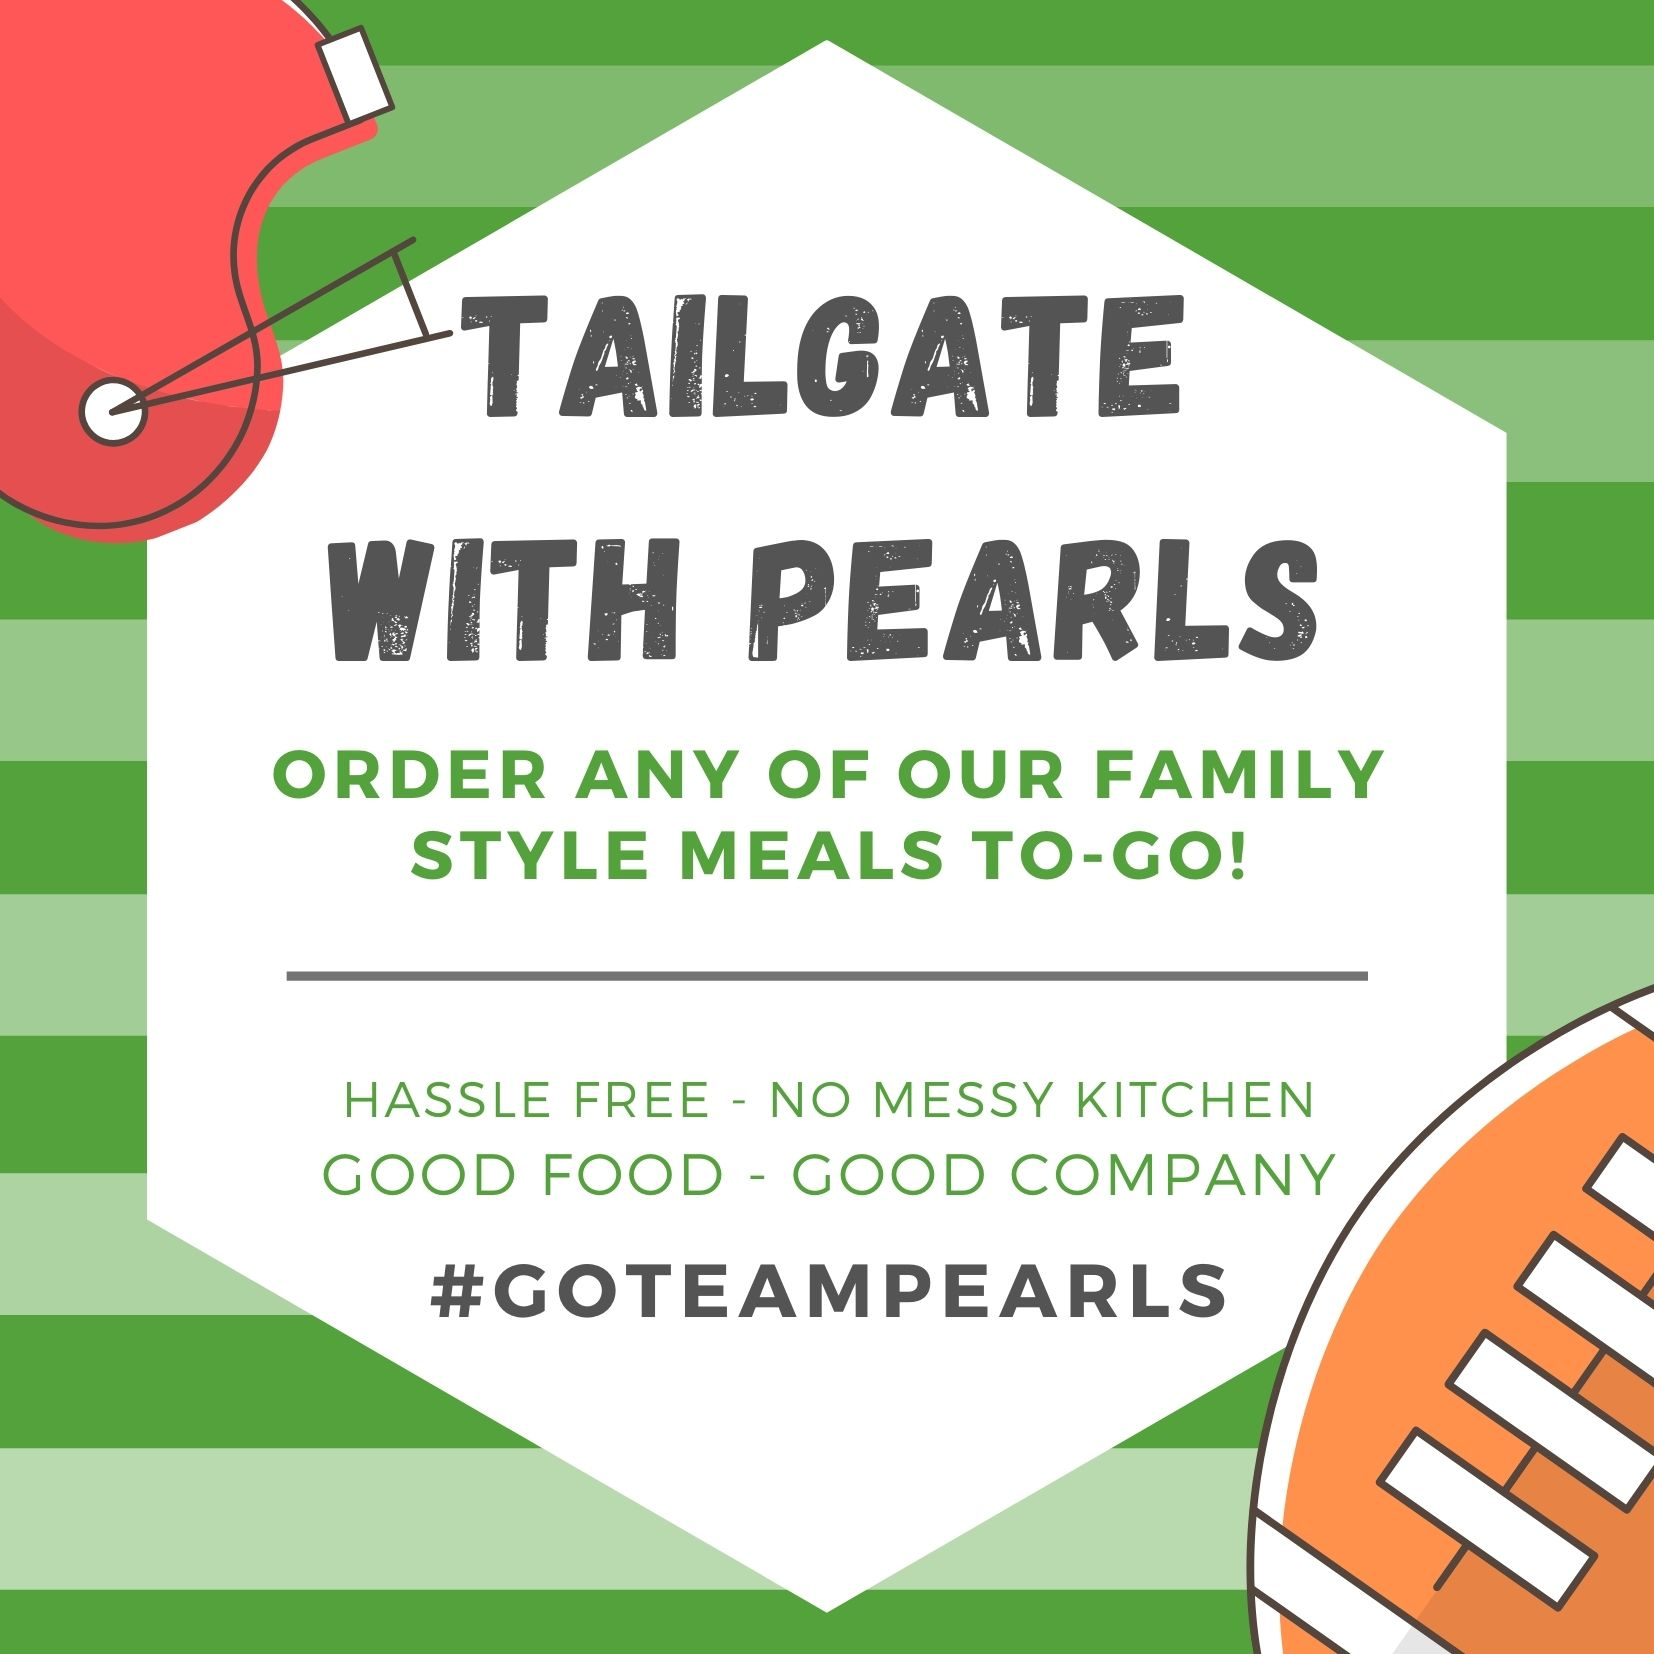 Tailgate with Pearls Family-Style Meals TO-GO!